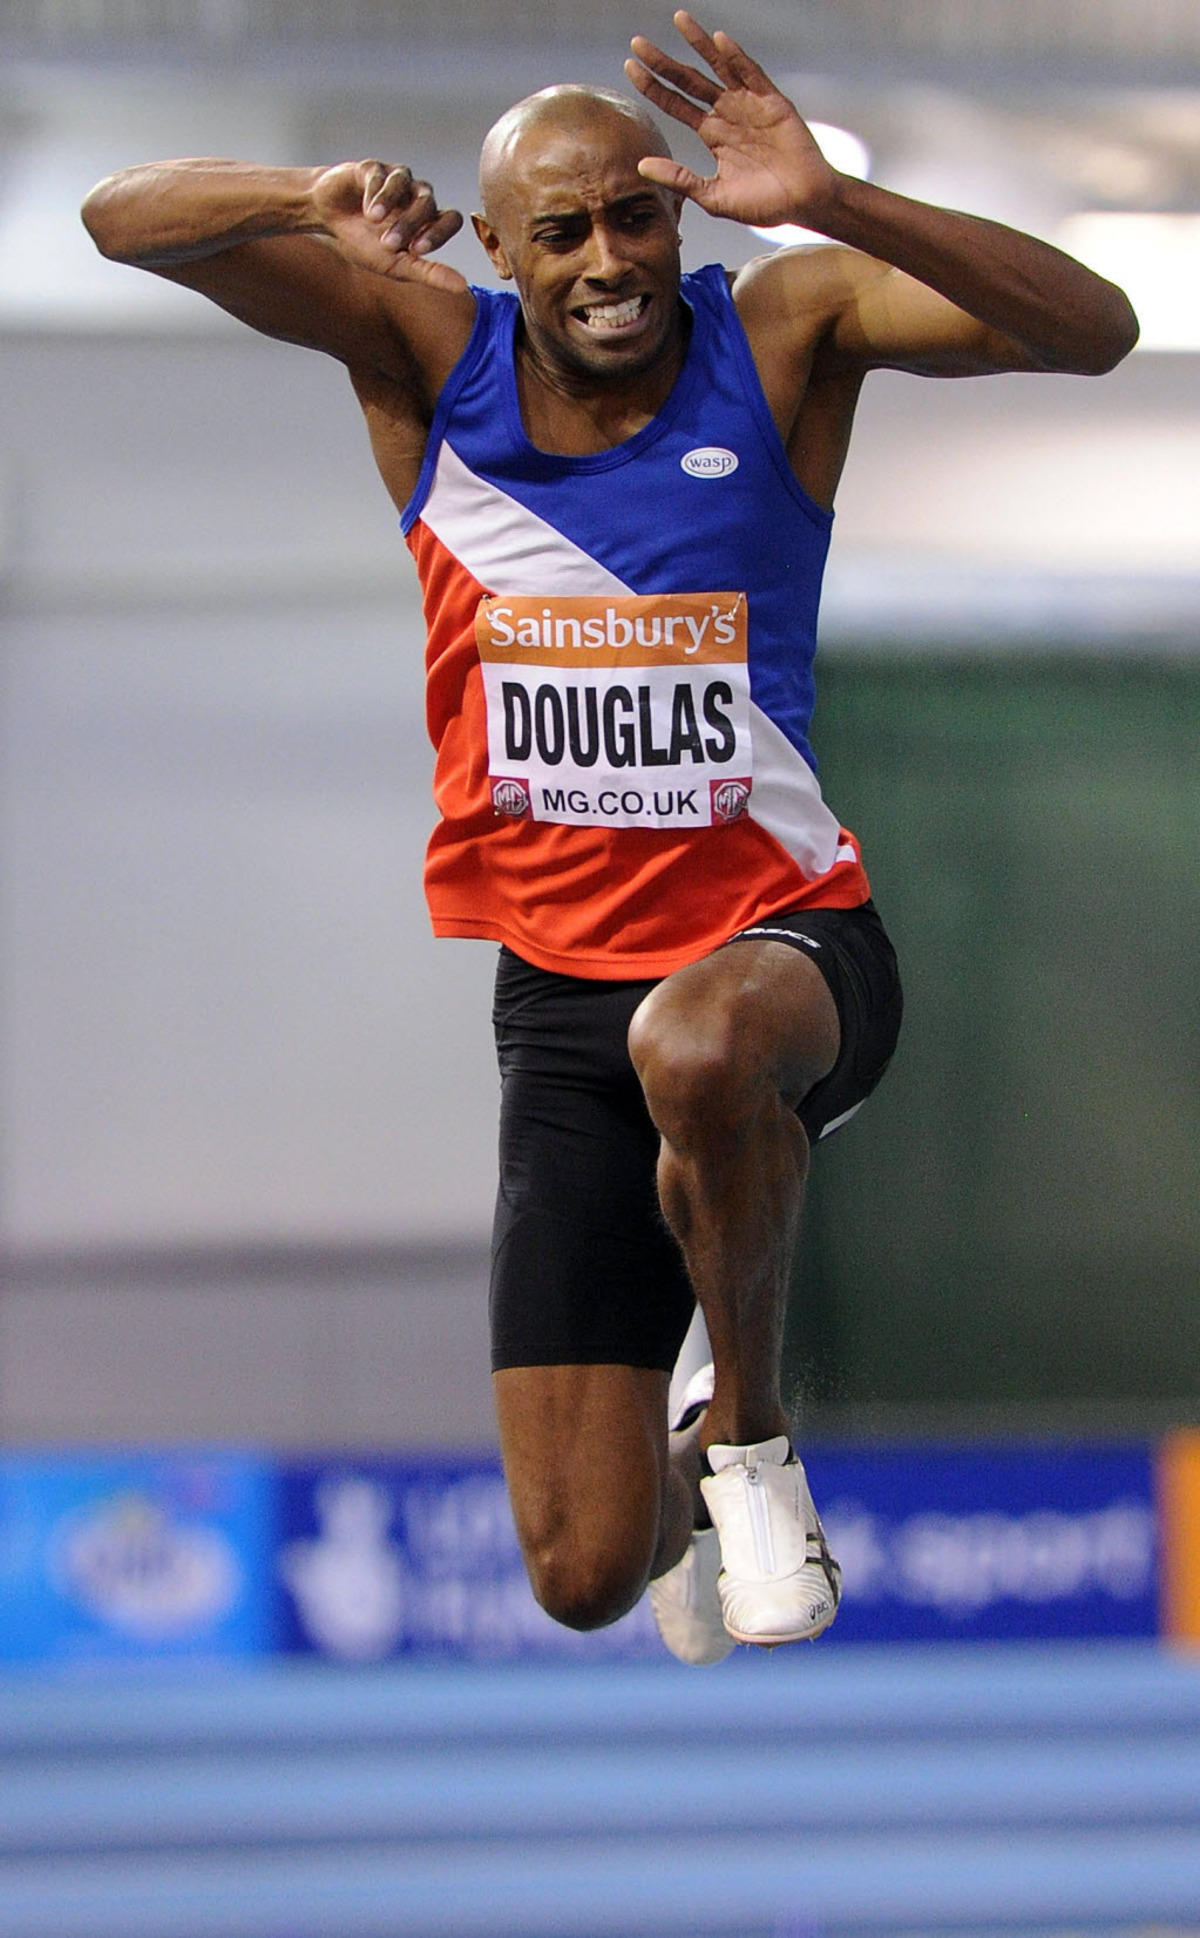 Nathan Douglas in action at the National Indoor Championships in February